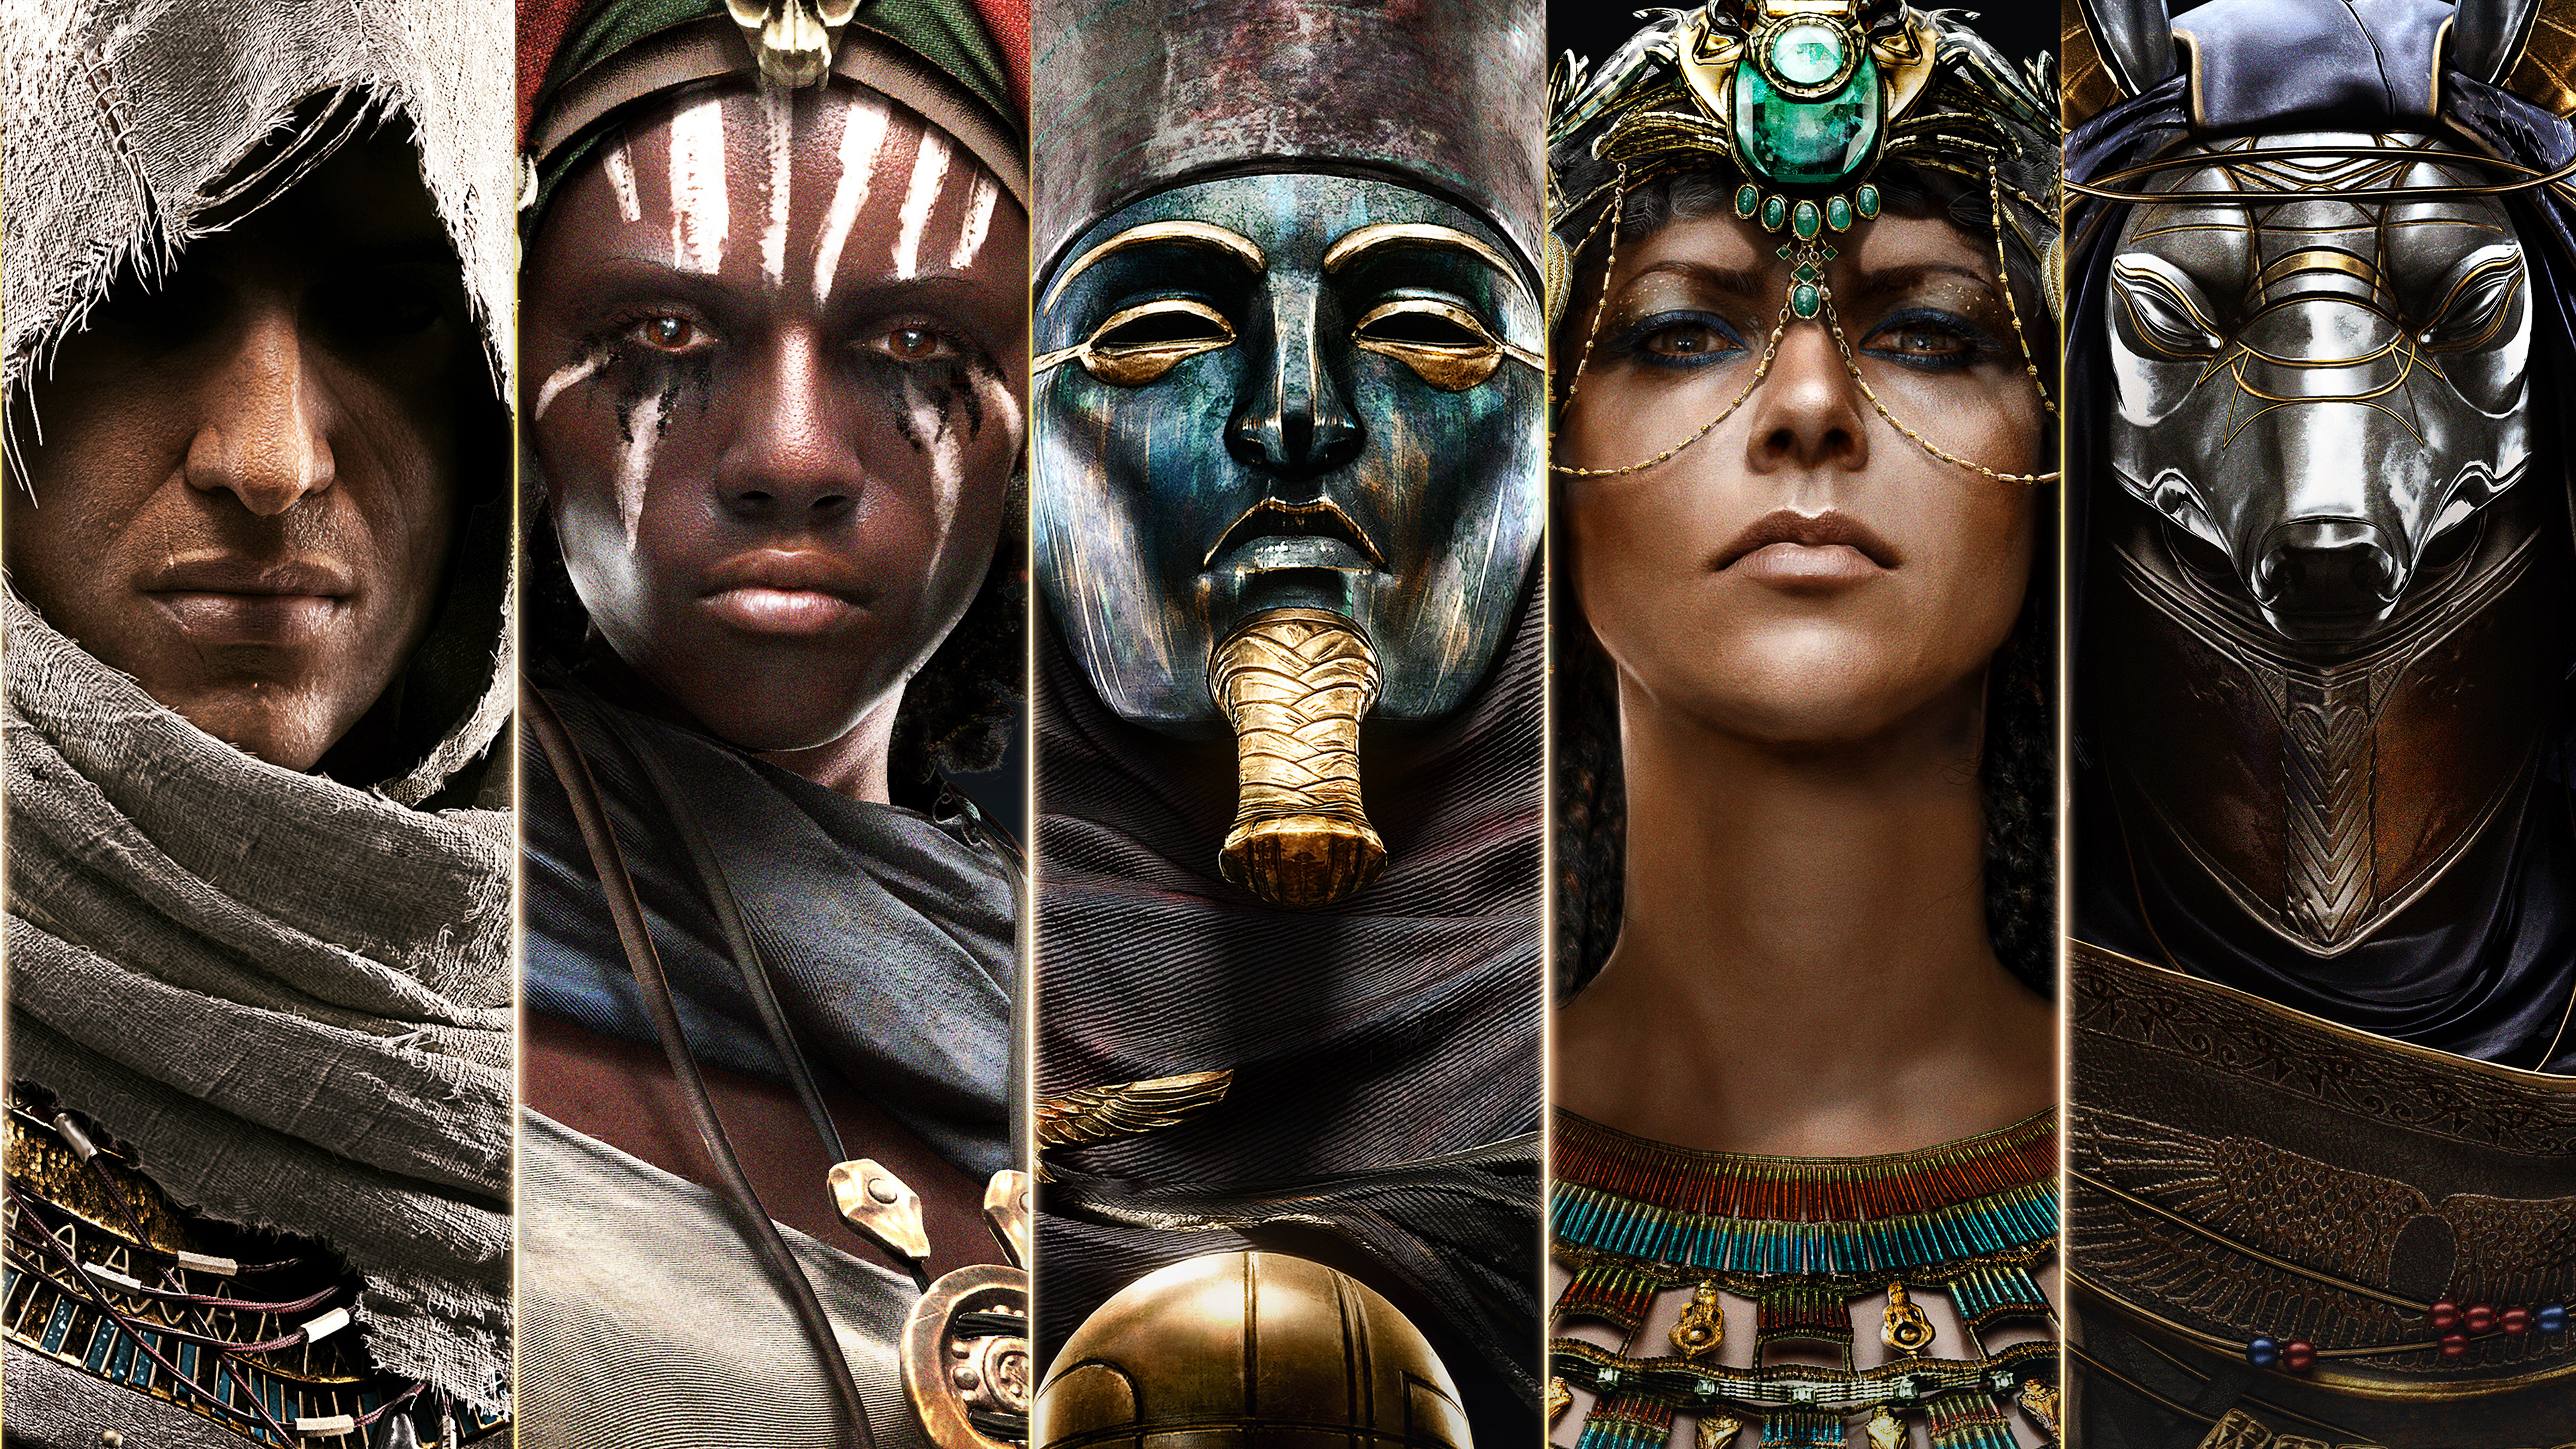 1920x1080 Assassins Creed Origins Characters 4k Laptop Full Hd 1080p Hd 4k Wallpapers Images Backgrounds Photos And Pictures